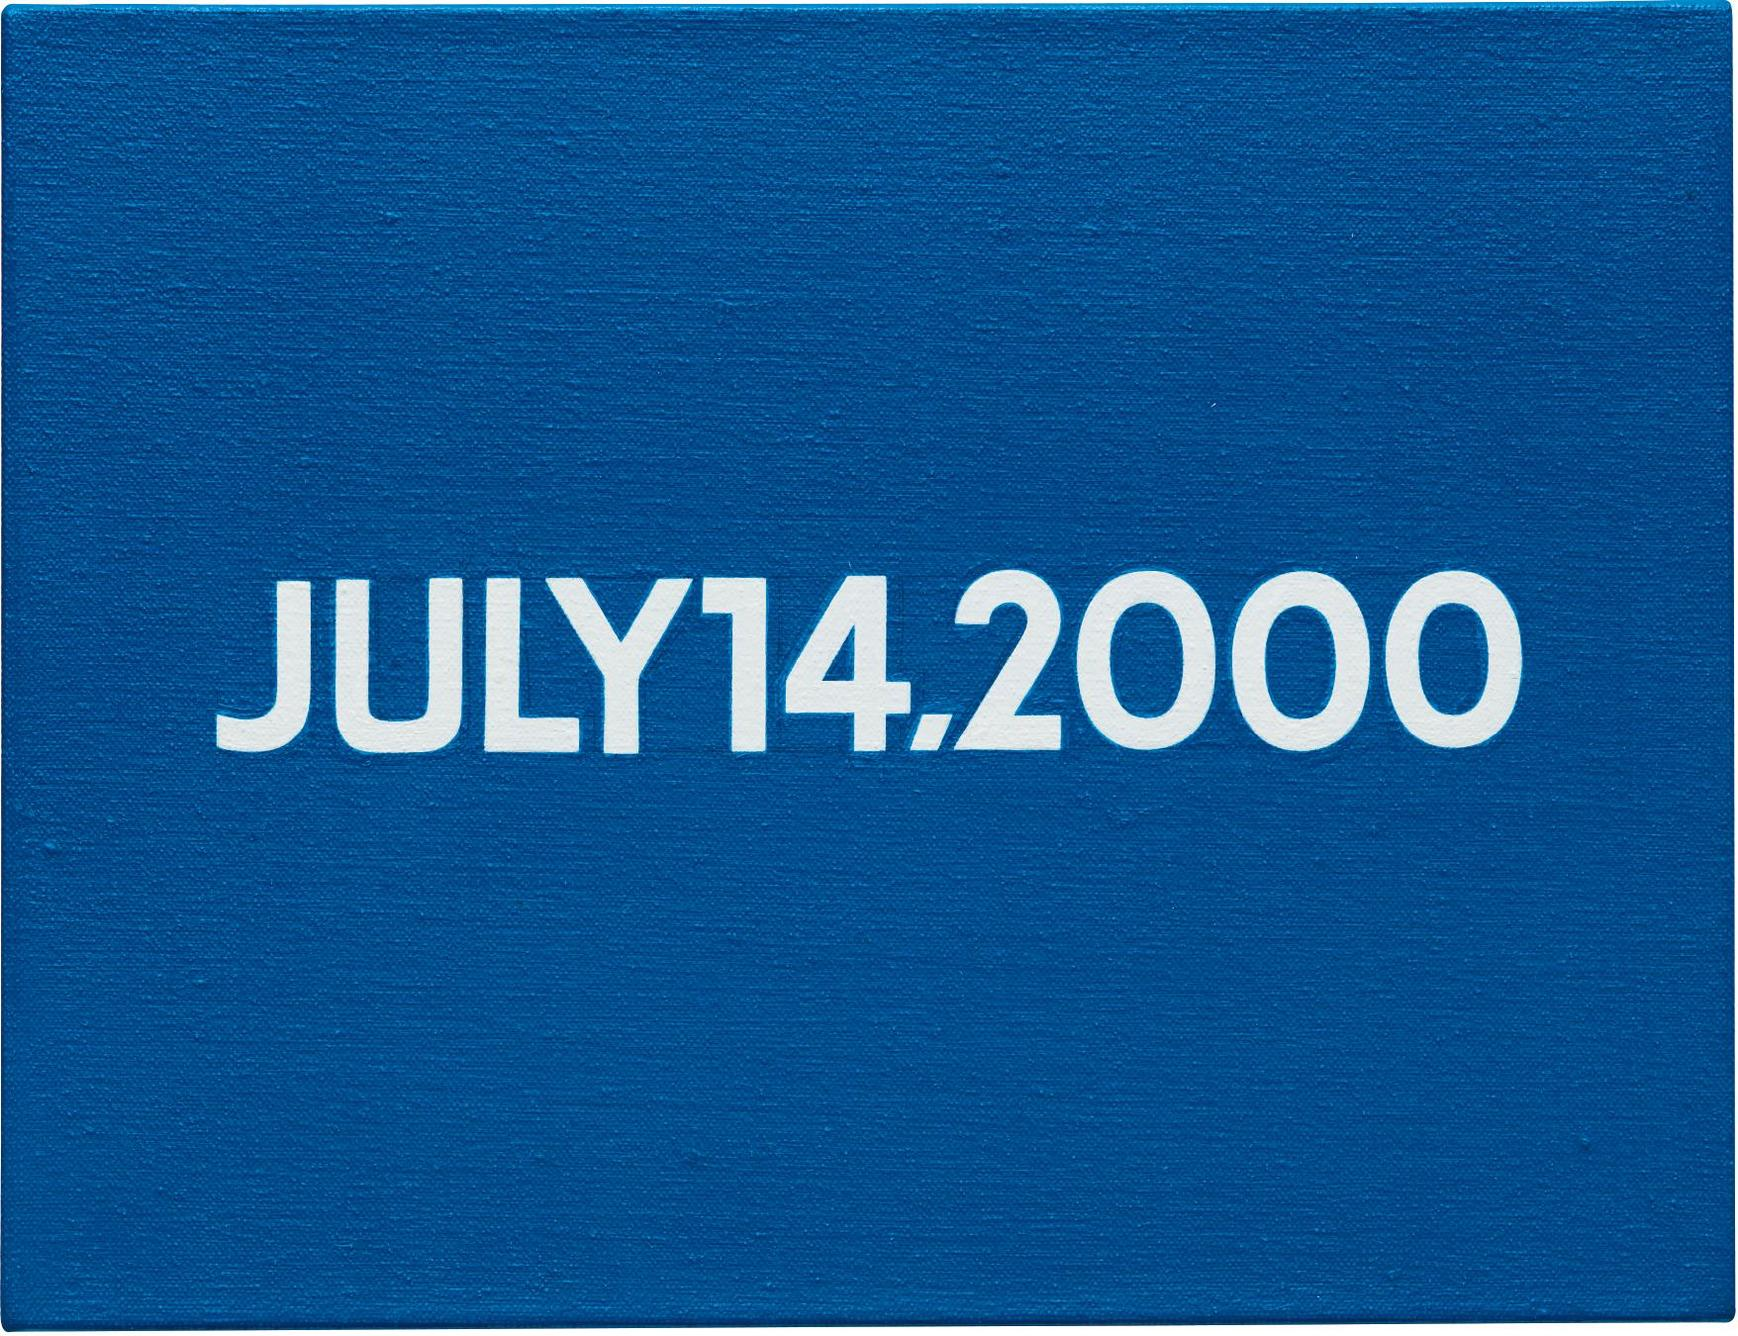 On Kawara-Friday July 14, 2000 (Today Series No. 26)-2000